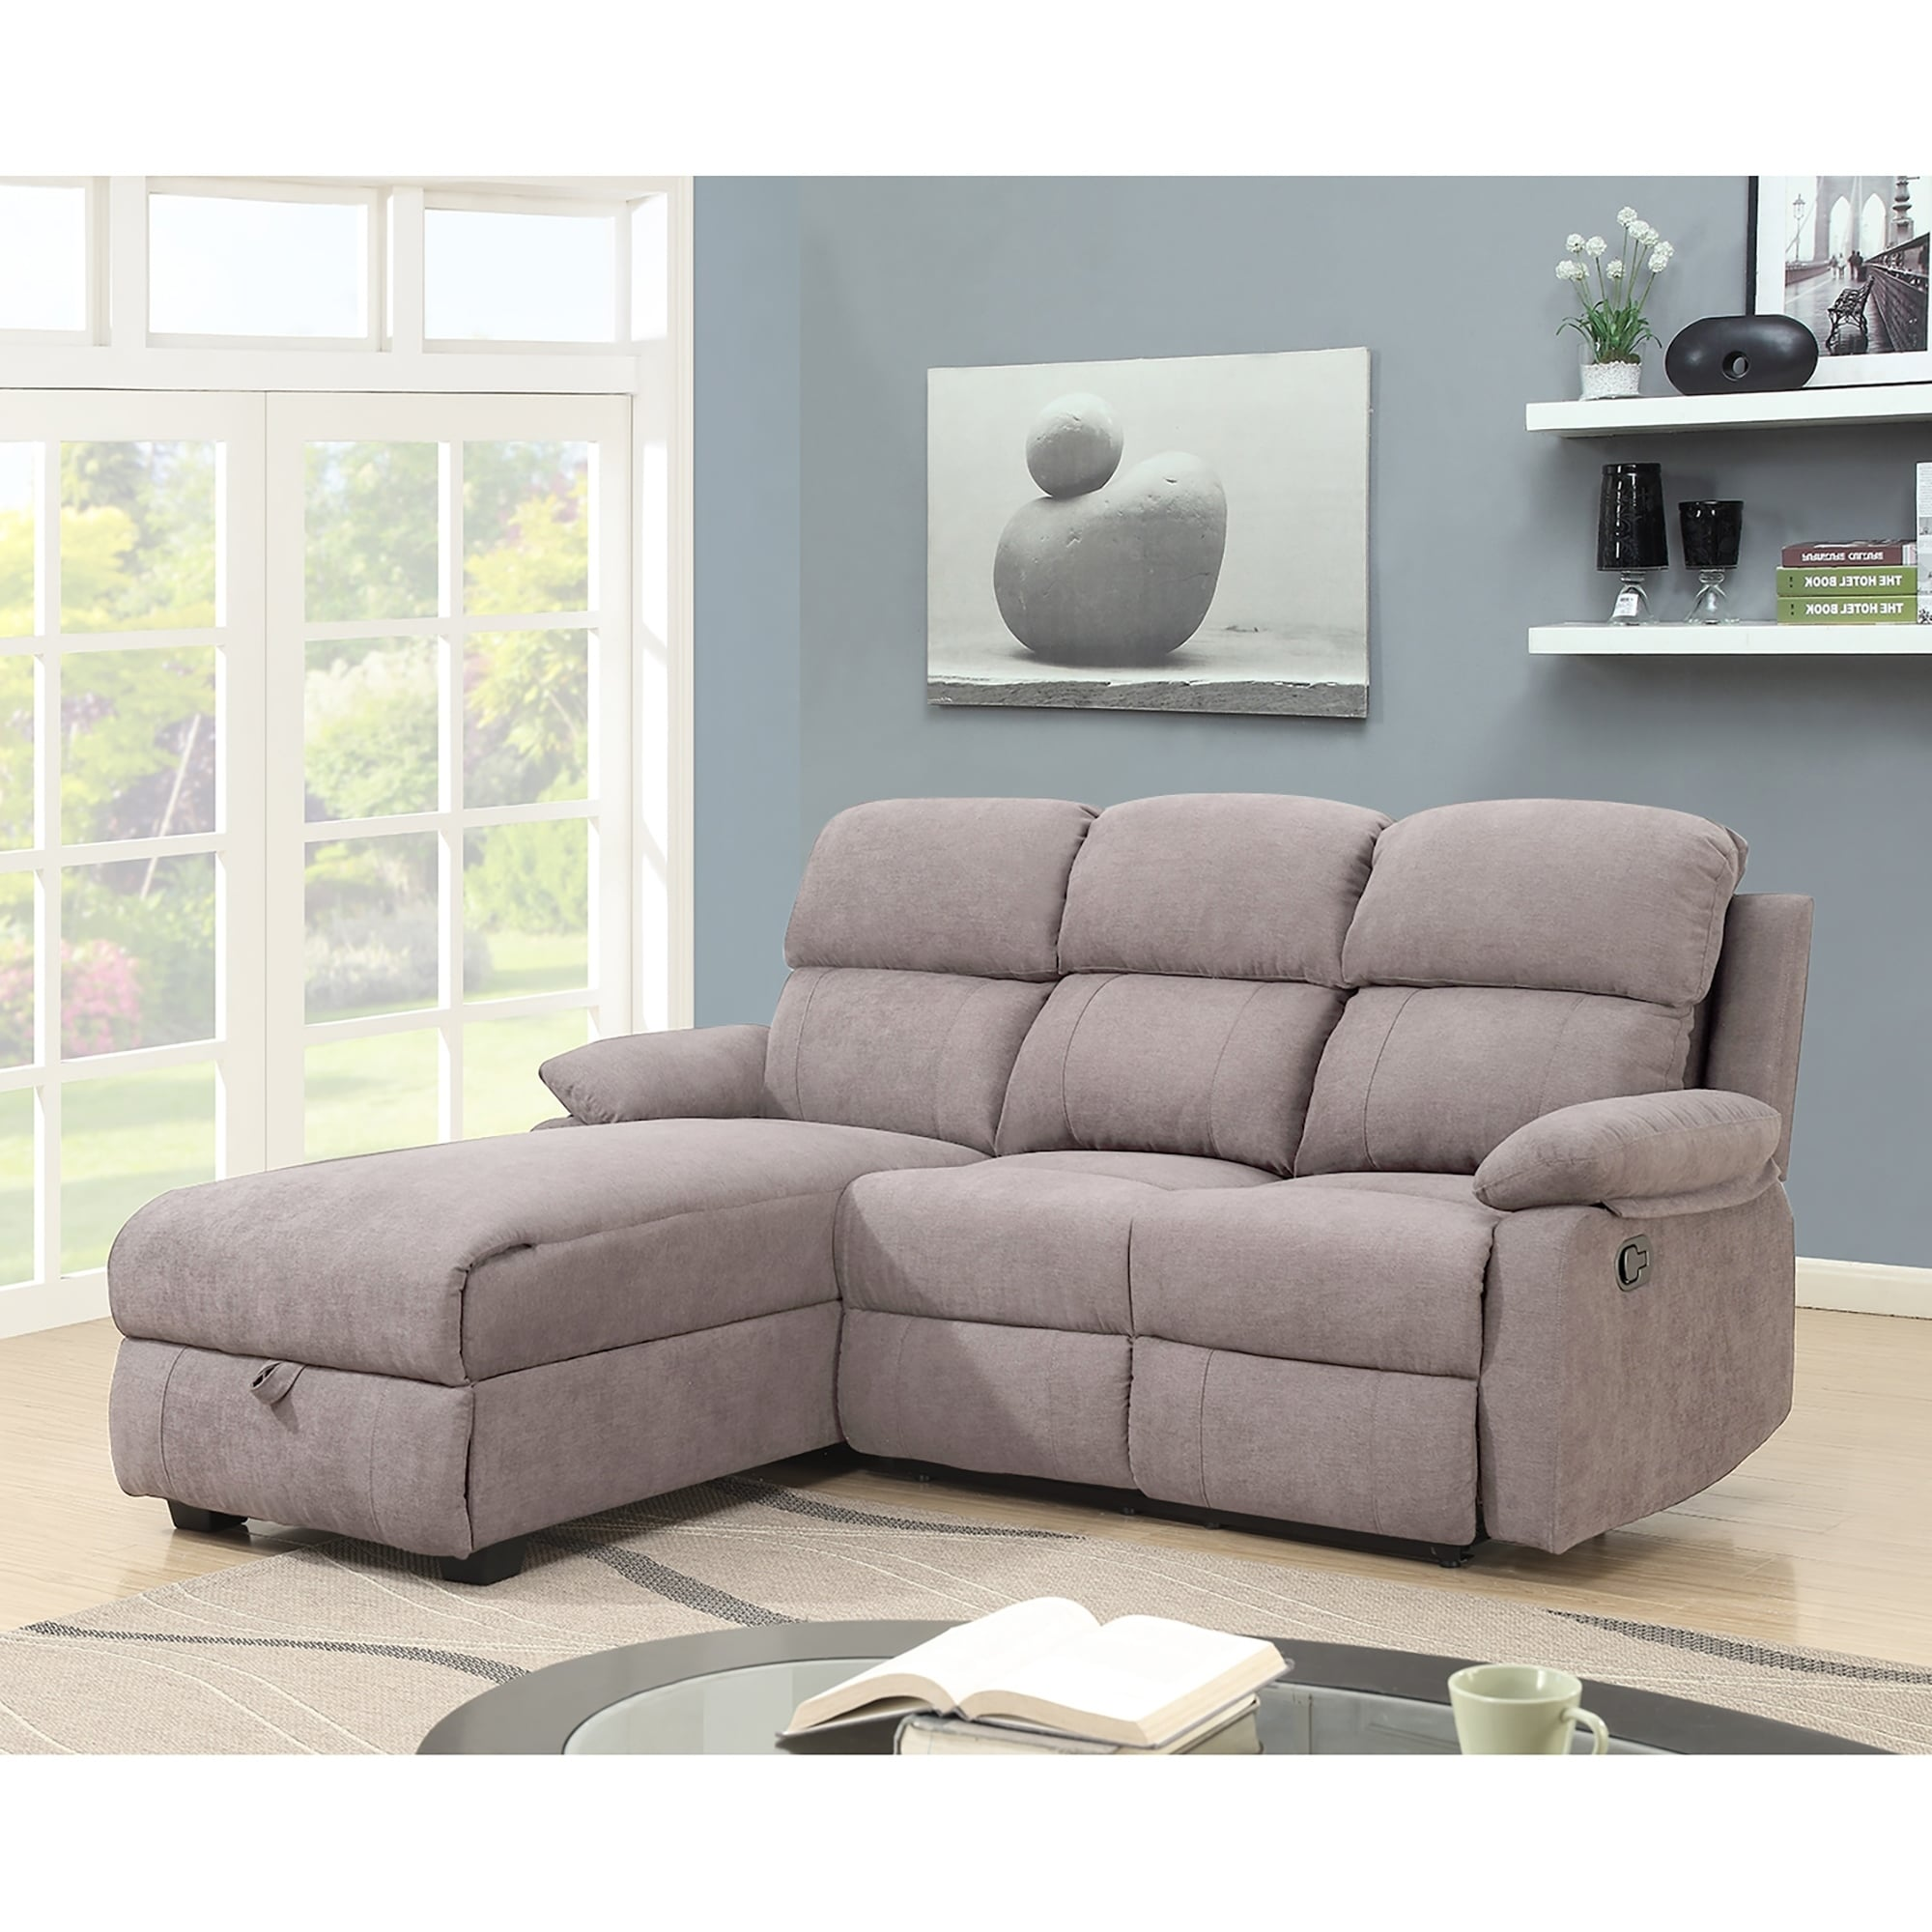 Melody Recliner L Shaped Corner